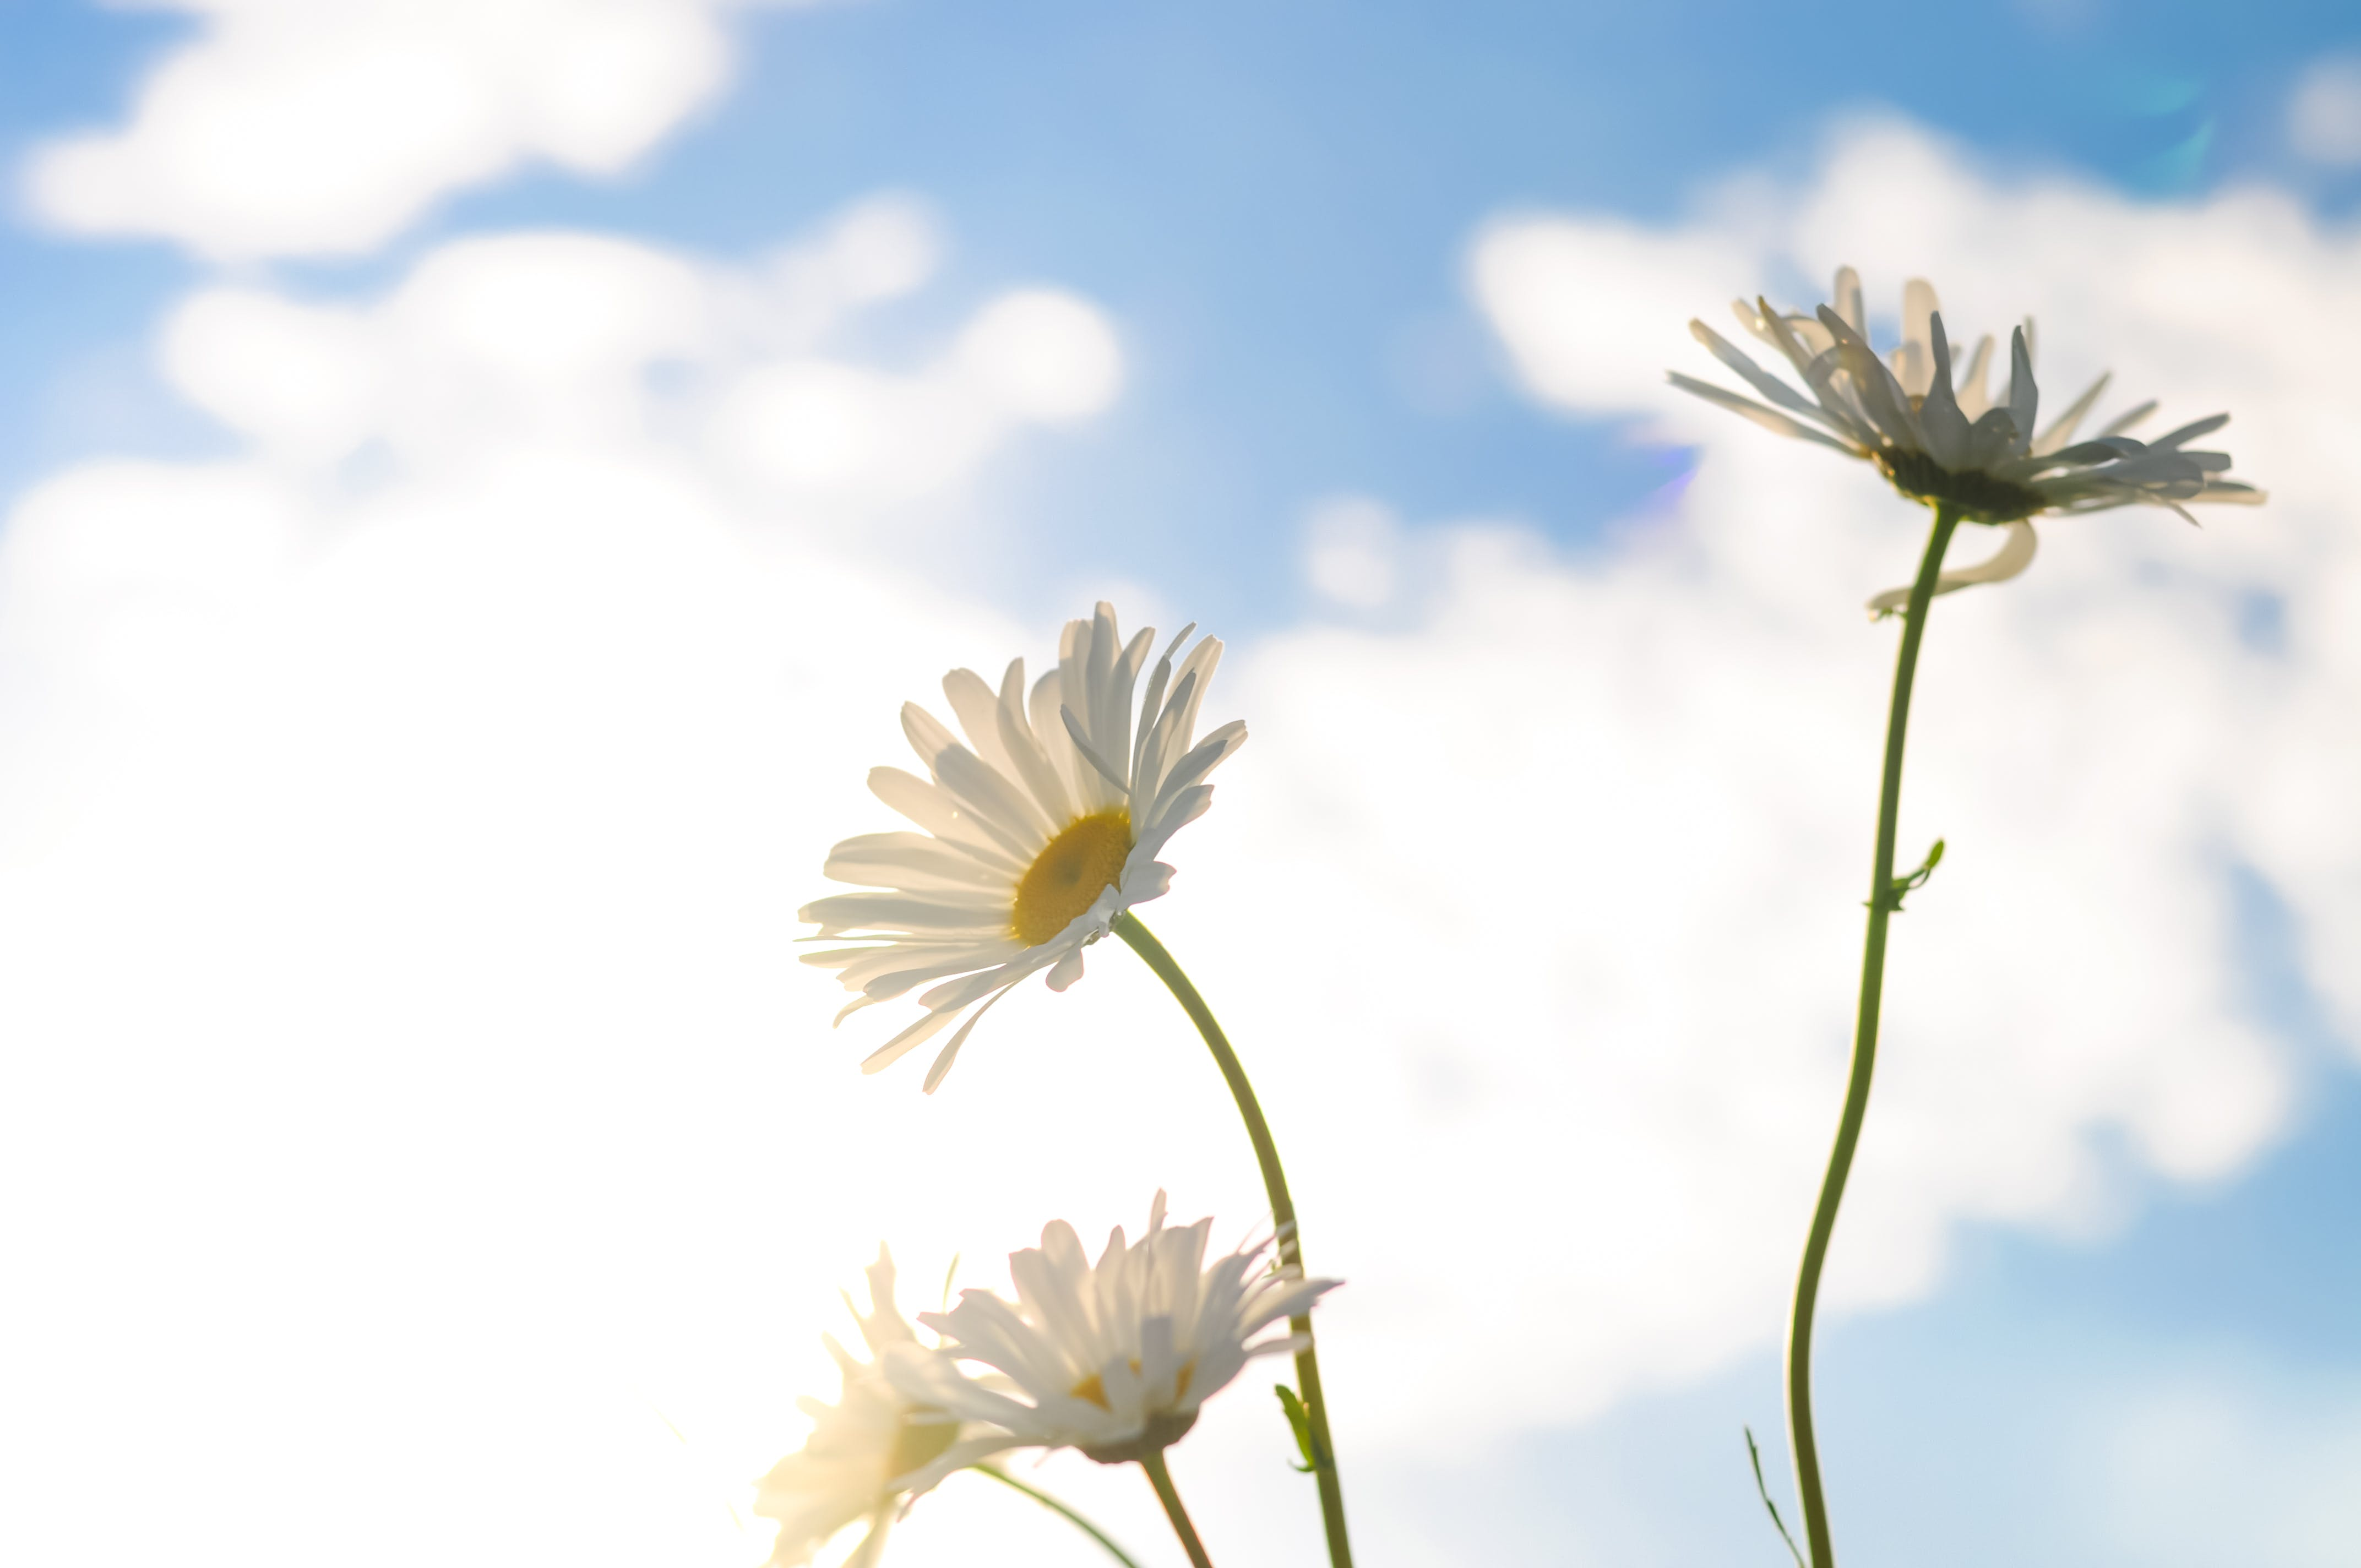 Shallow Focus Photography of Three White Daisies